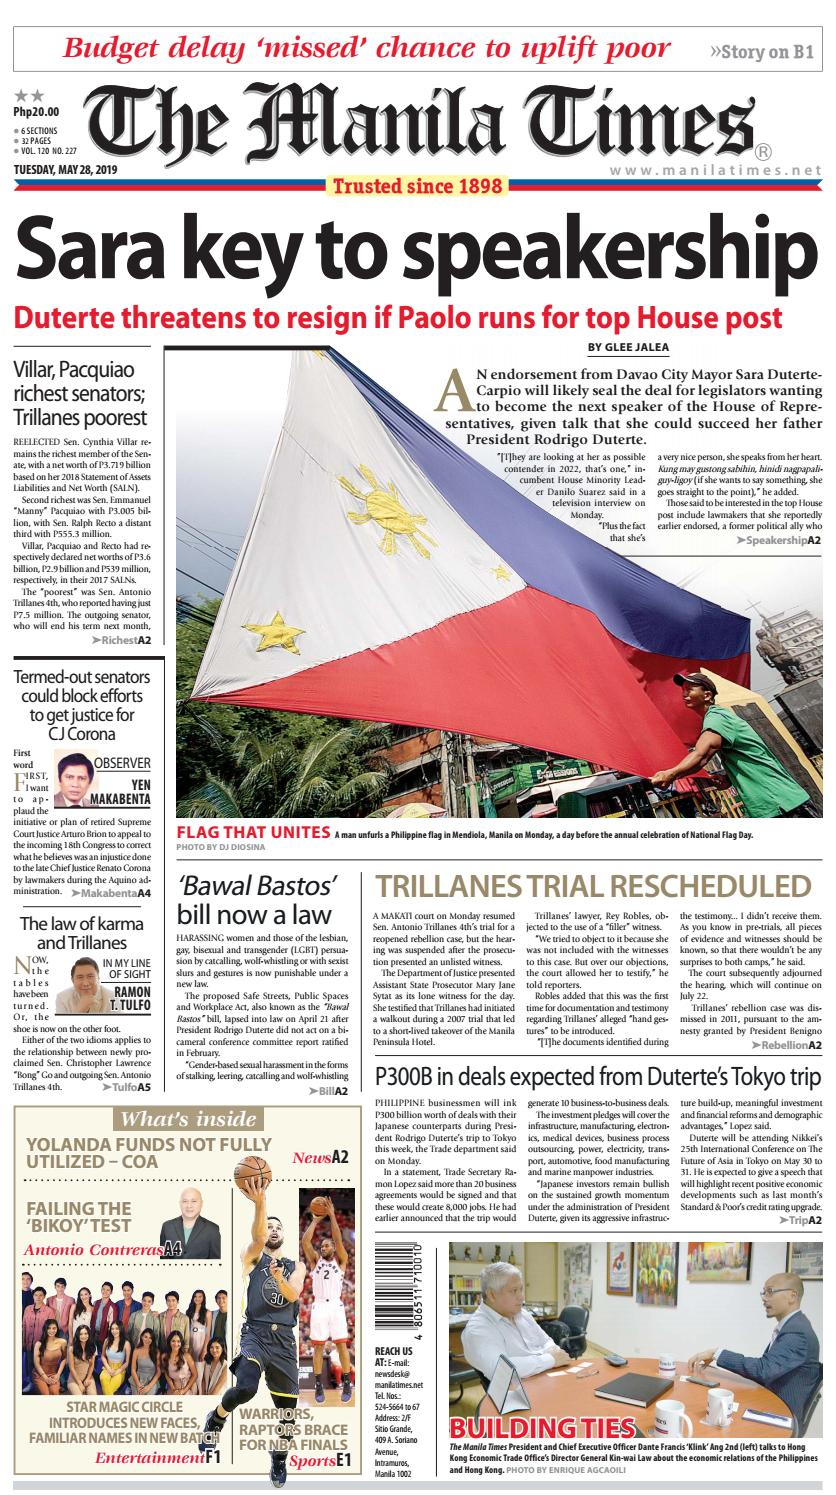 THE MANILA TIMES | MAY 28, 2019 by The Manila Times - issuu